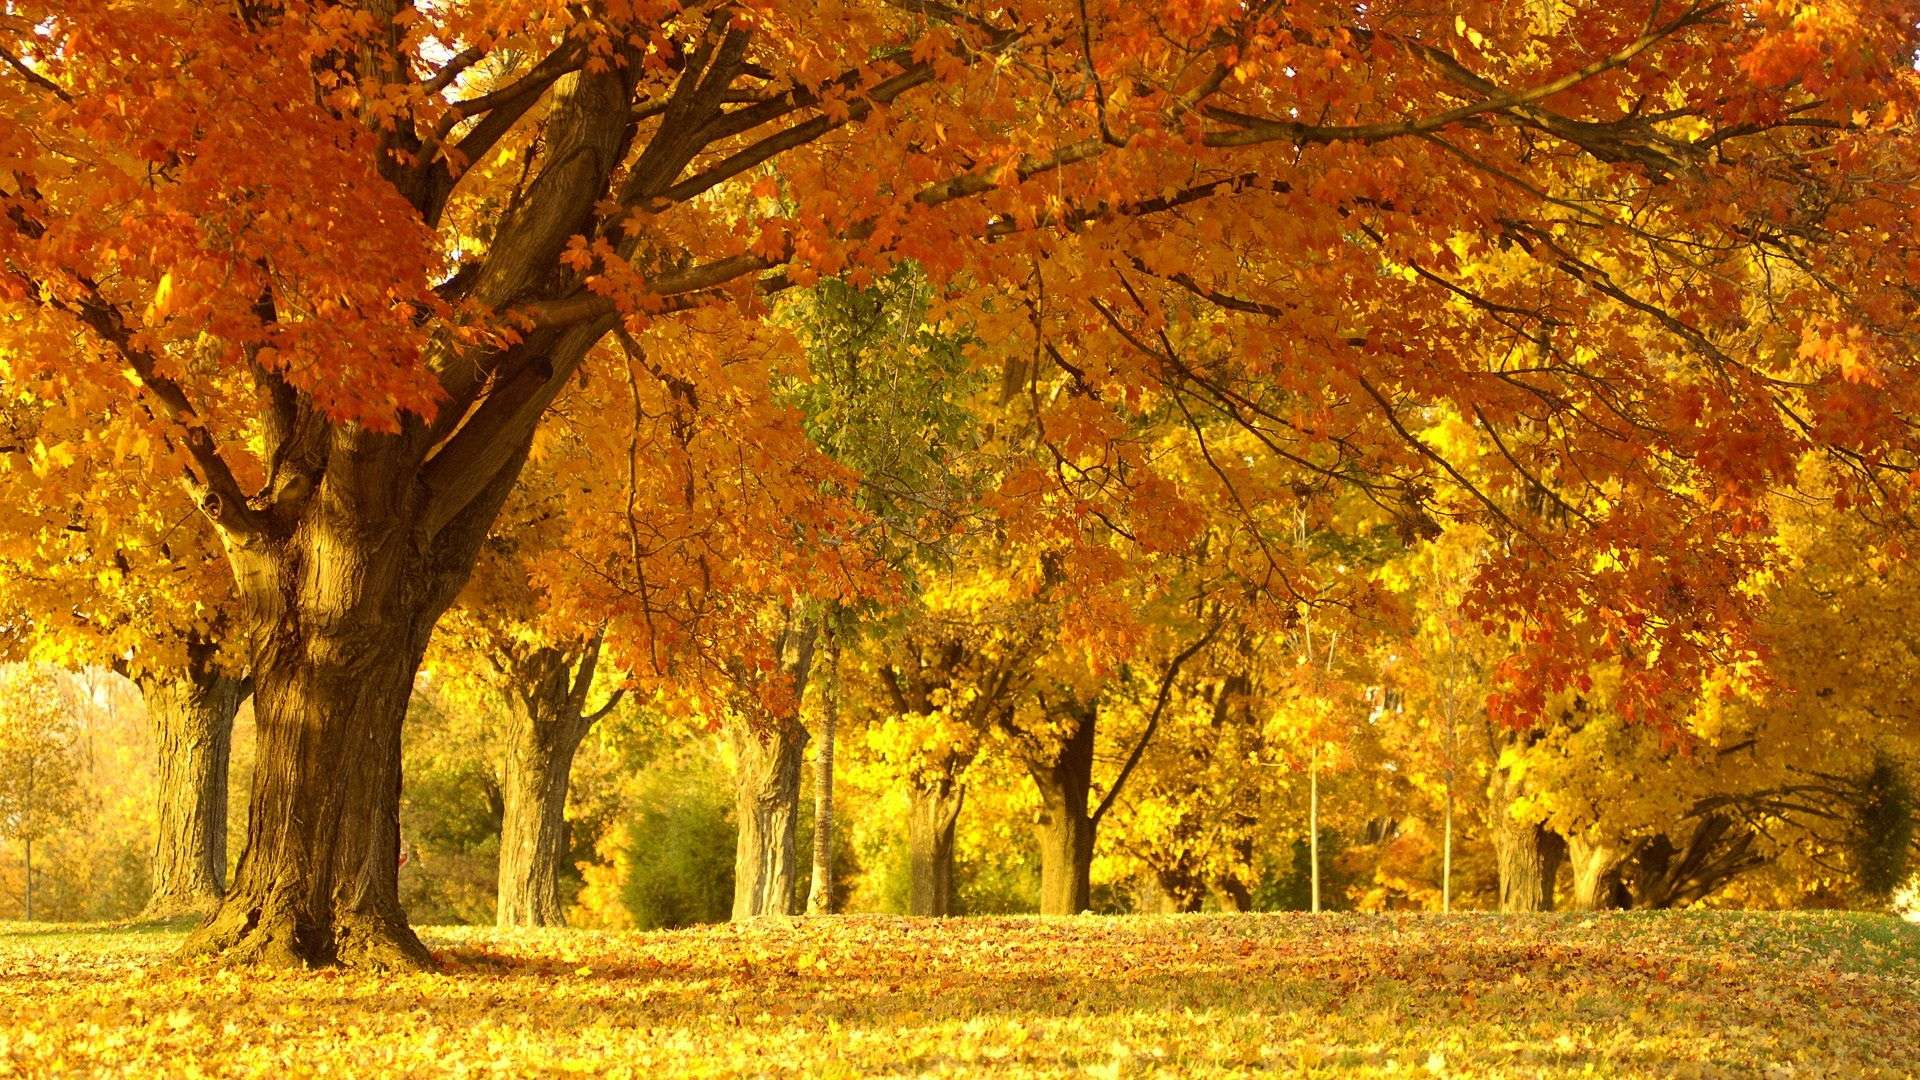 Autumn Wallpaper 012